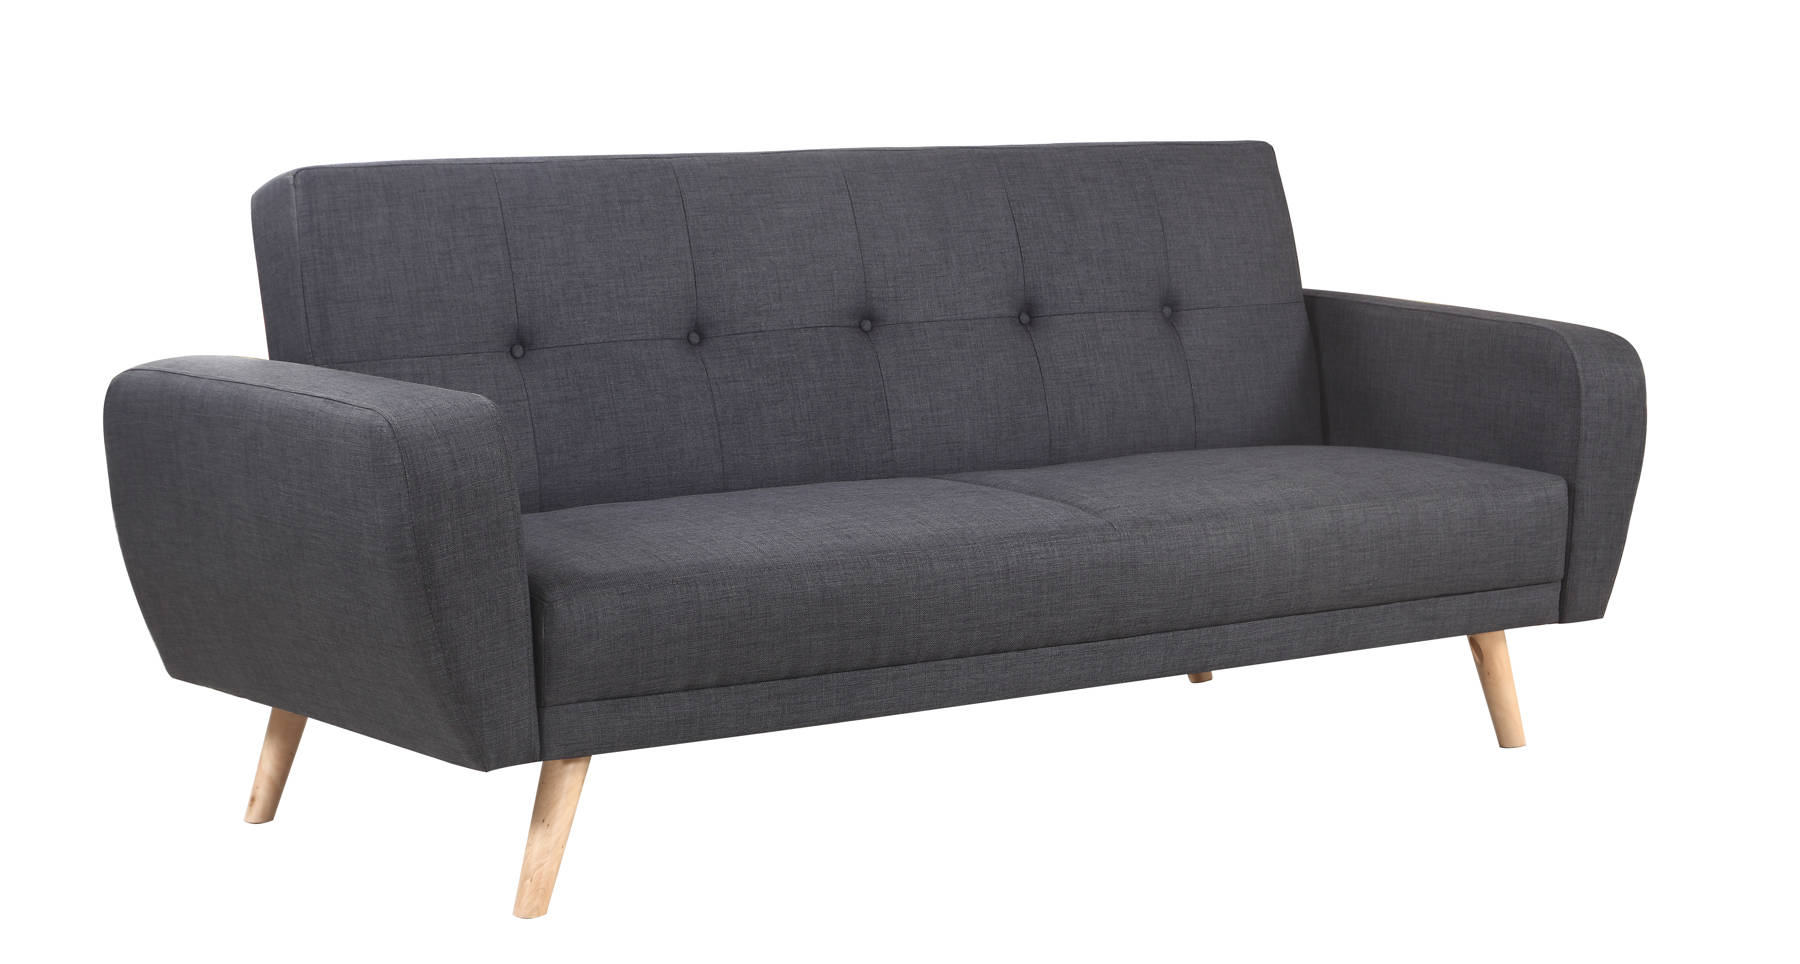 Mia Large Sofa Bed - Ezzo